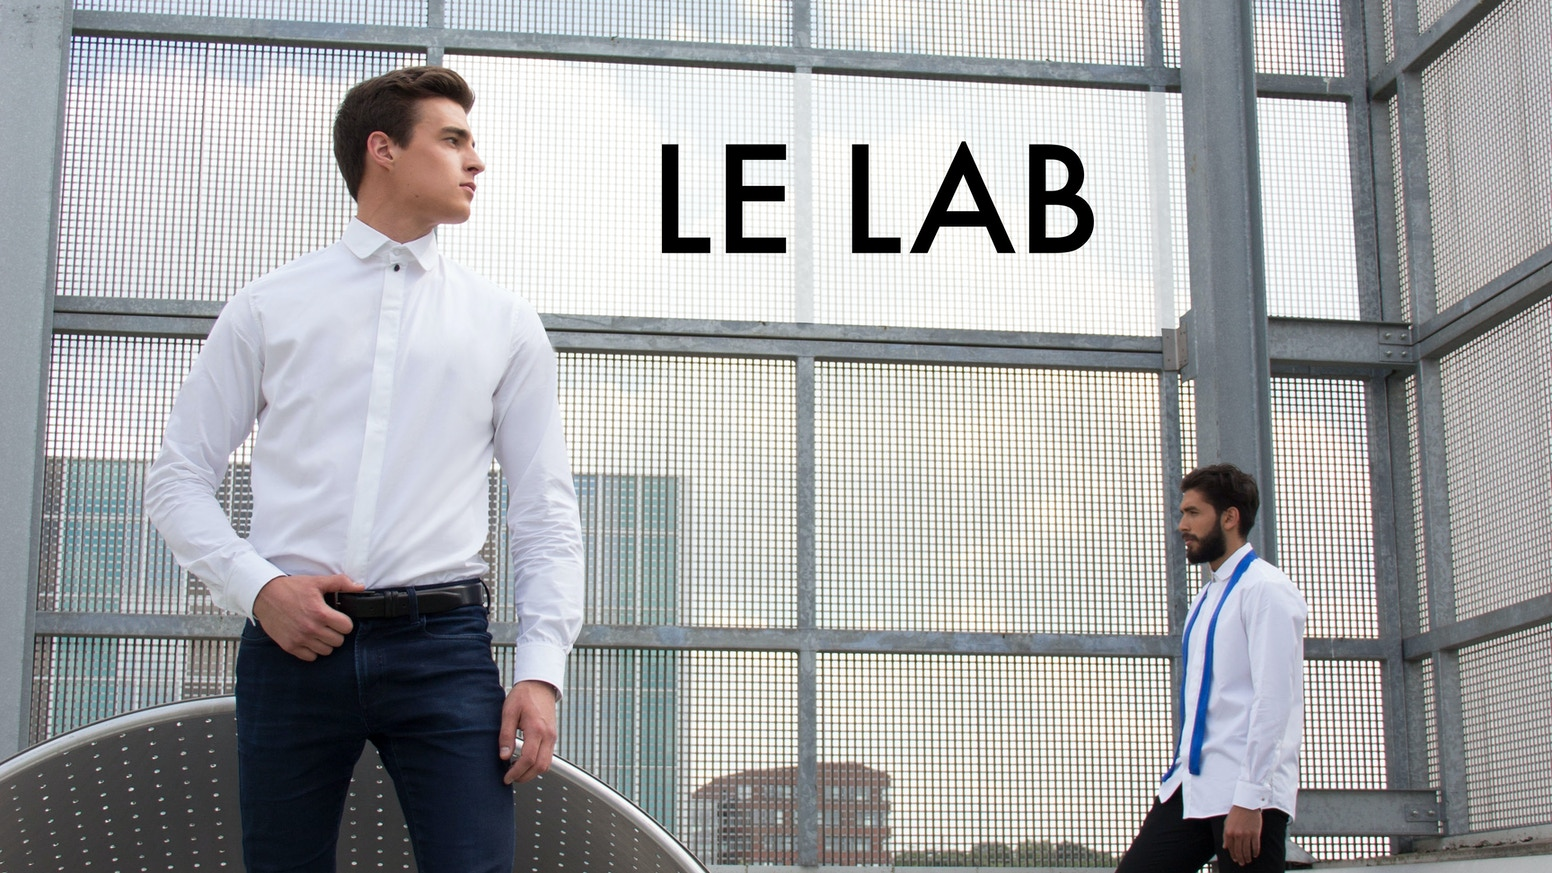 Stain-repellent, antiperspirant, stretch, elegant... Le Lab created the Ideal shirt by combining the best of style, cut and fabric.